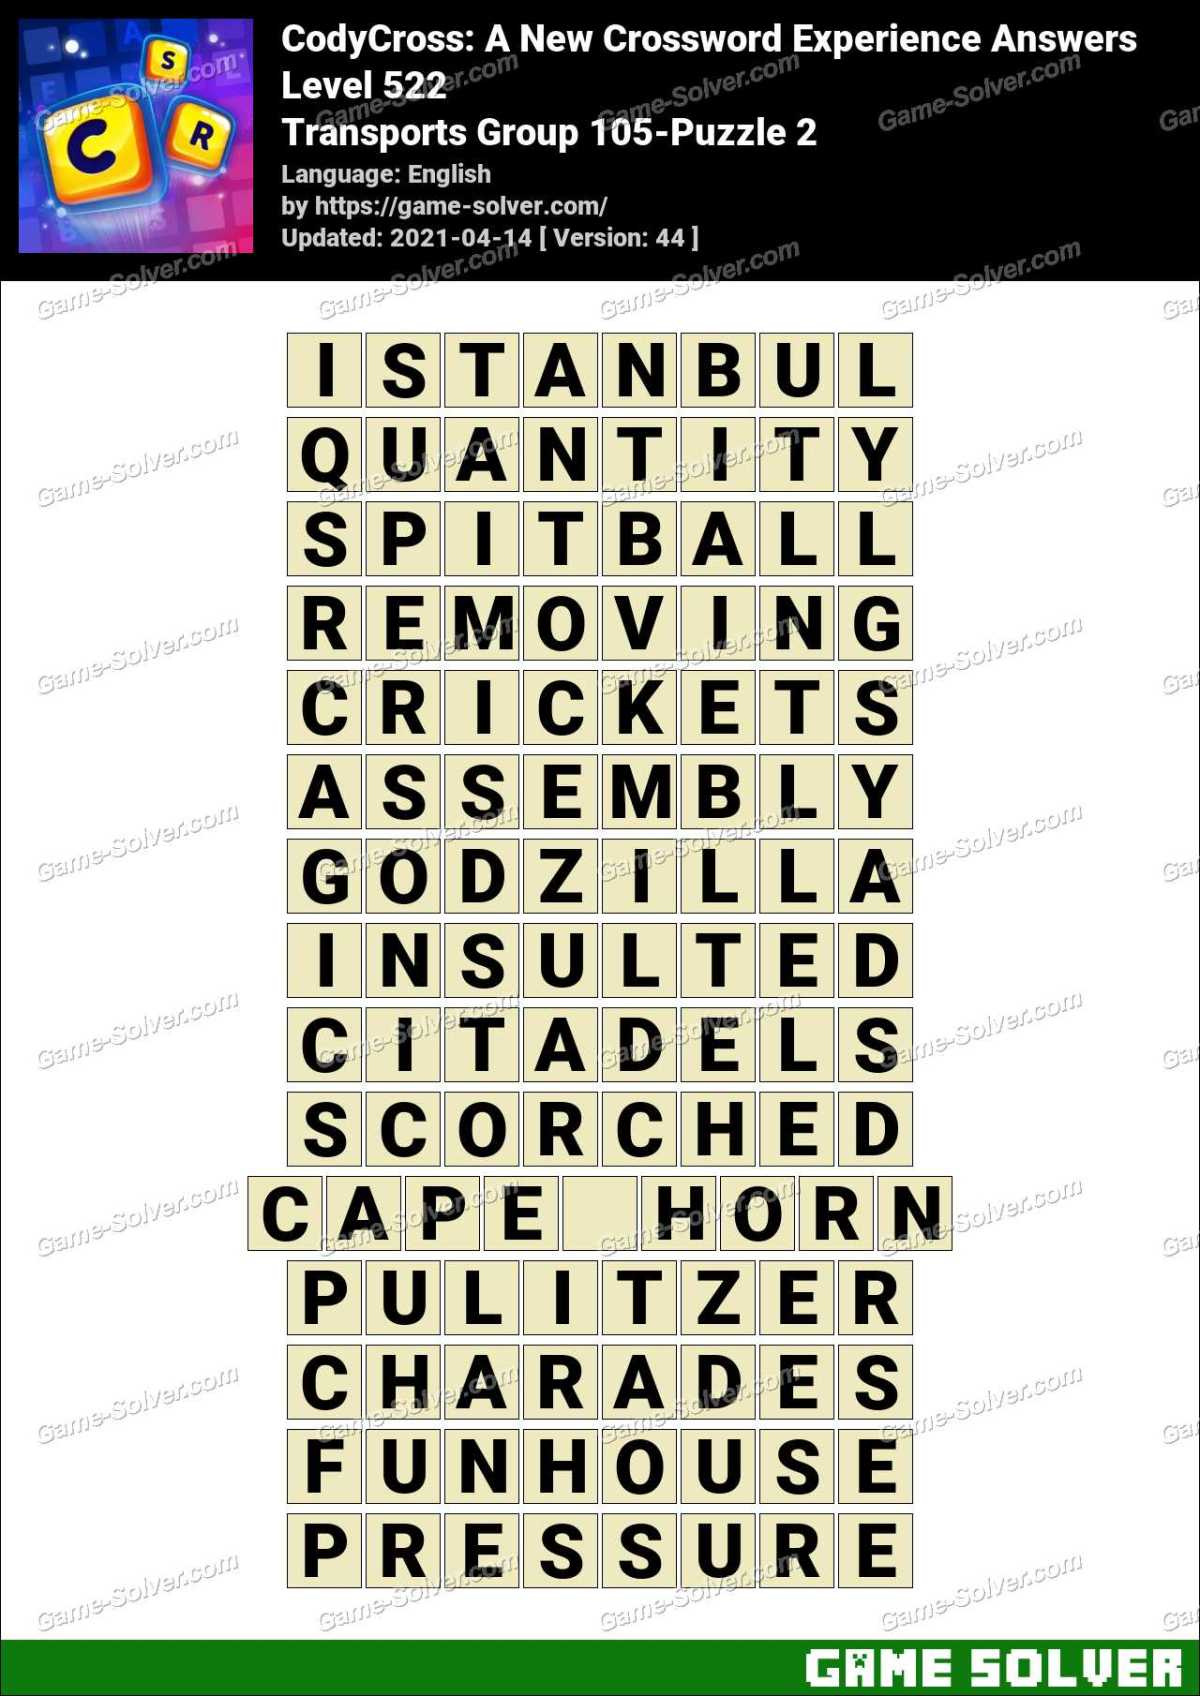 CodyCross Transports Group 105-Puzzle 2 Answers